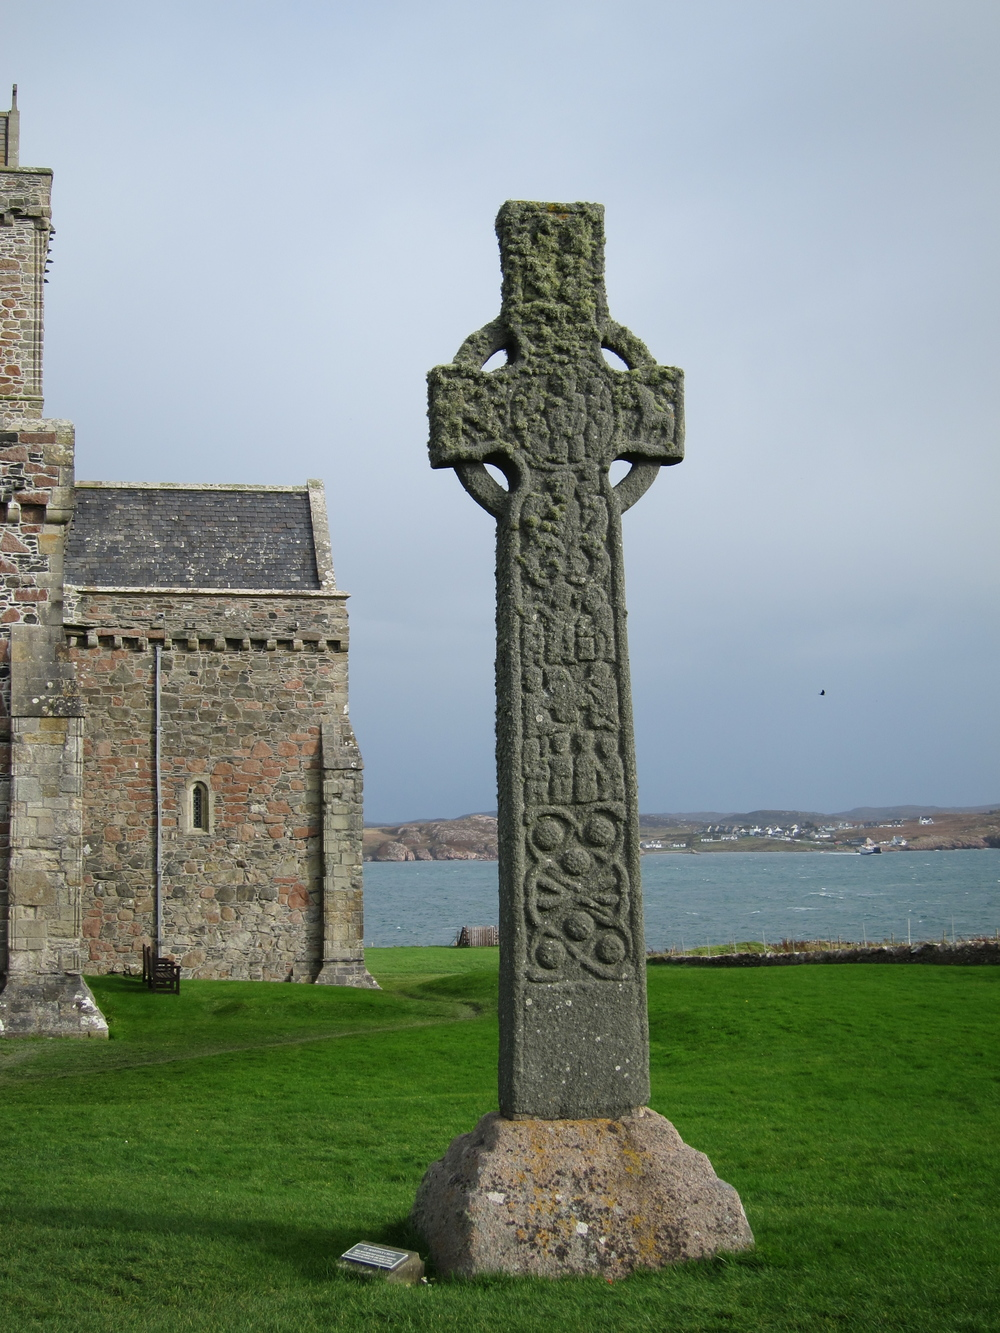 St. Martin's Cross at Iona